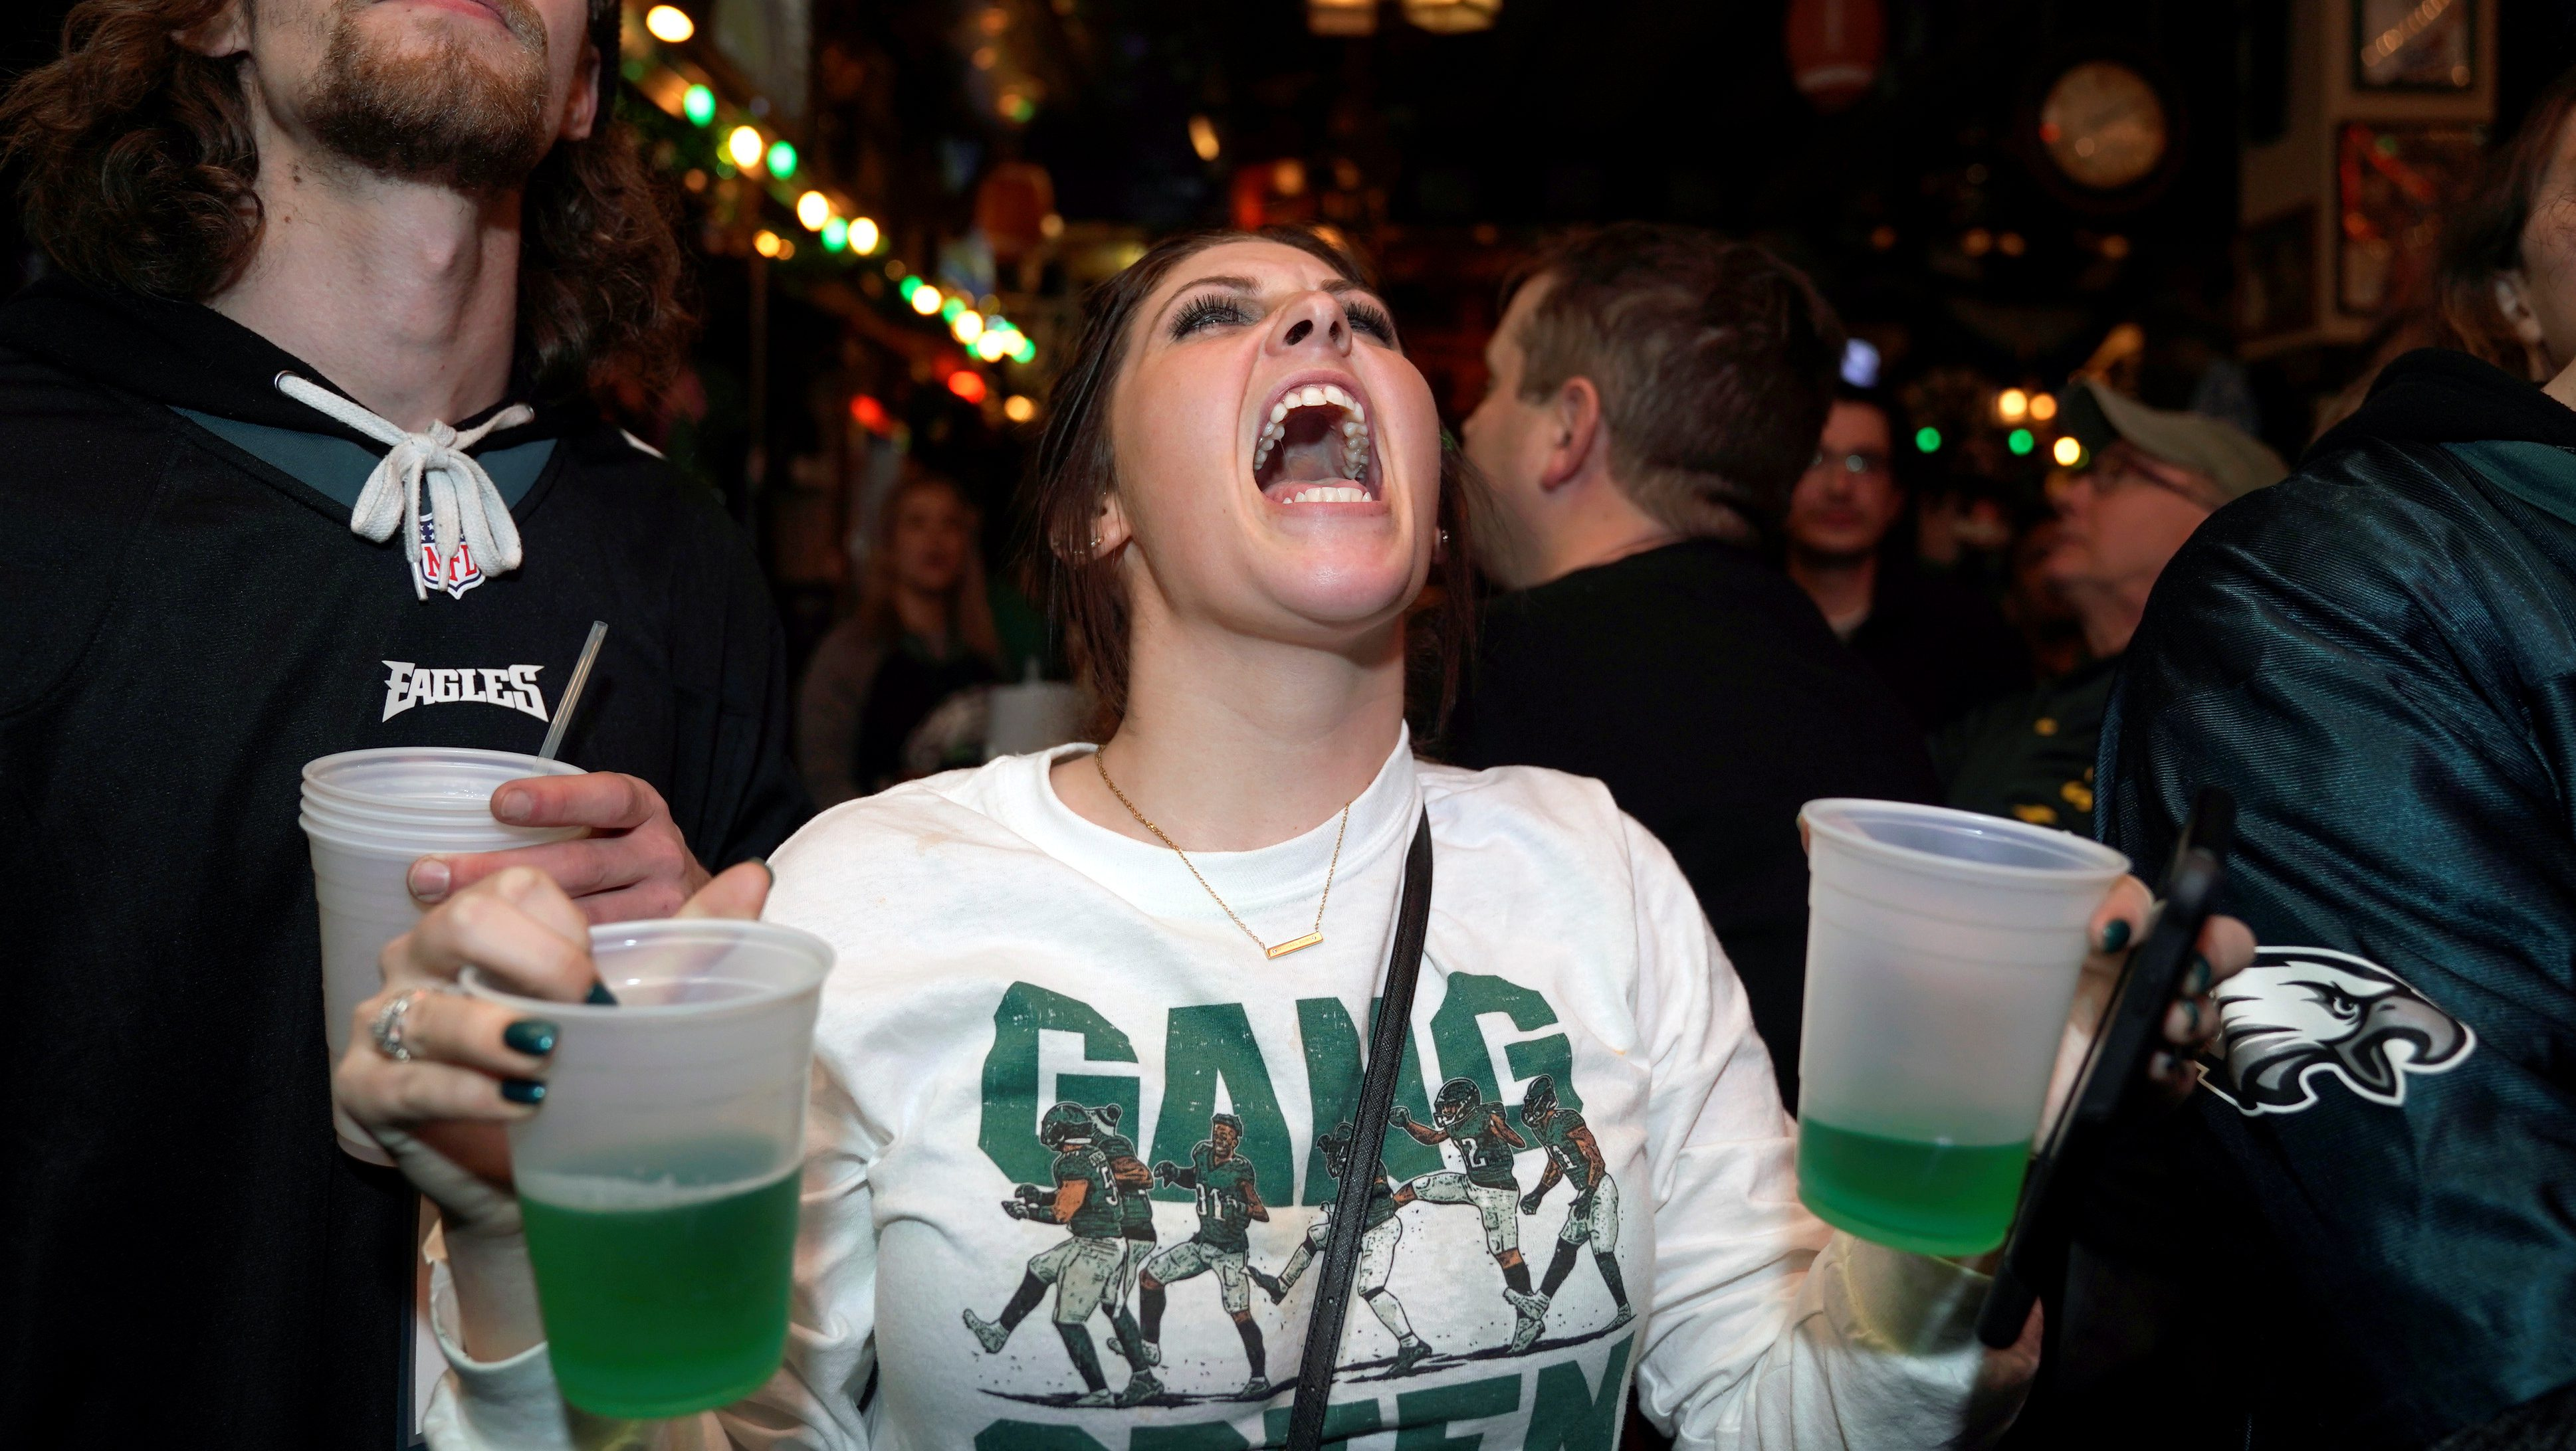 Football fans, Nicholas Breslin (L) and Laura Demutis, react as they watch Super Bowl LII between the New England Patriots and the Philadelphia Eagles at the city's oldest tavern, McGillin's Olde Ale House in Philadelphia, Pennsylvania, U.S. February 4, 2018.